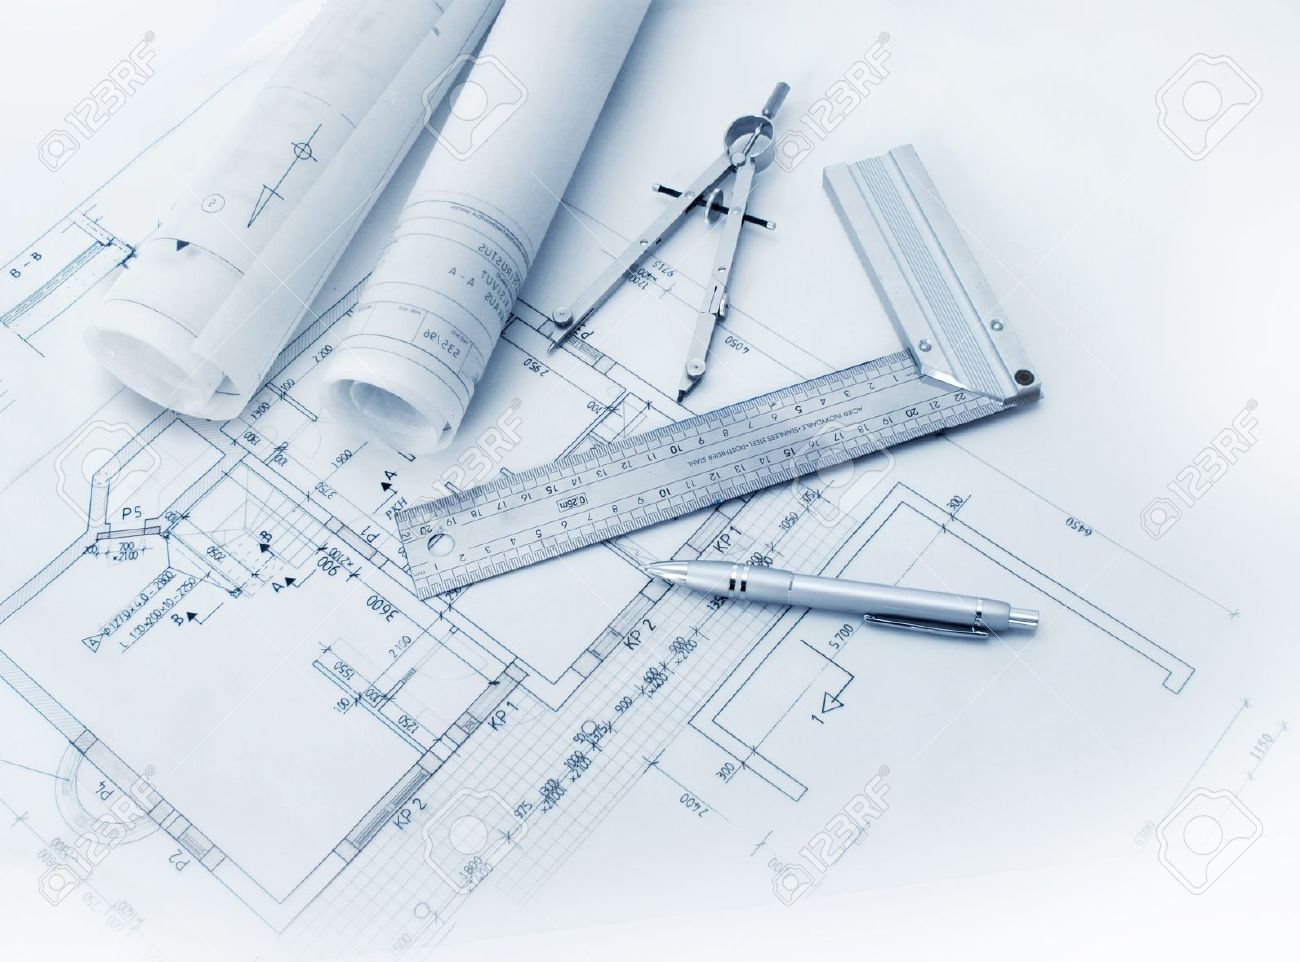 3baee2b5 8840 4277 Aa33 Dd3439de37e0 Drawing Out My Future On Emaze On Architect Drawing Blueprint